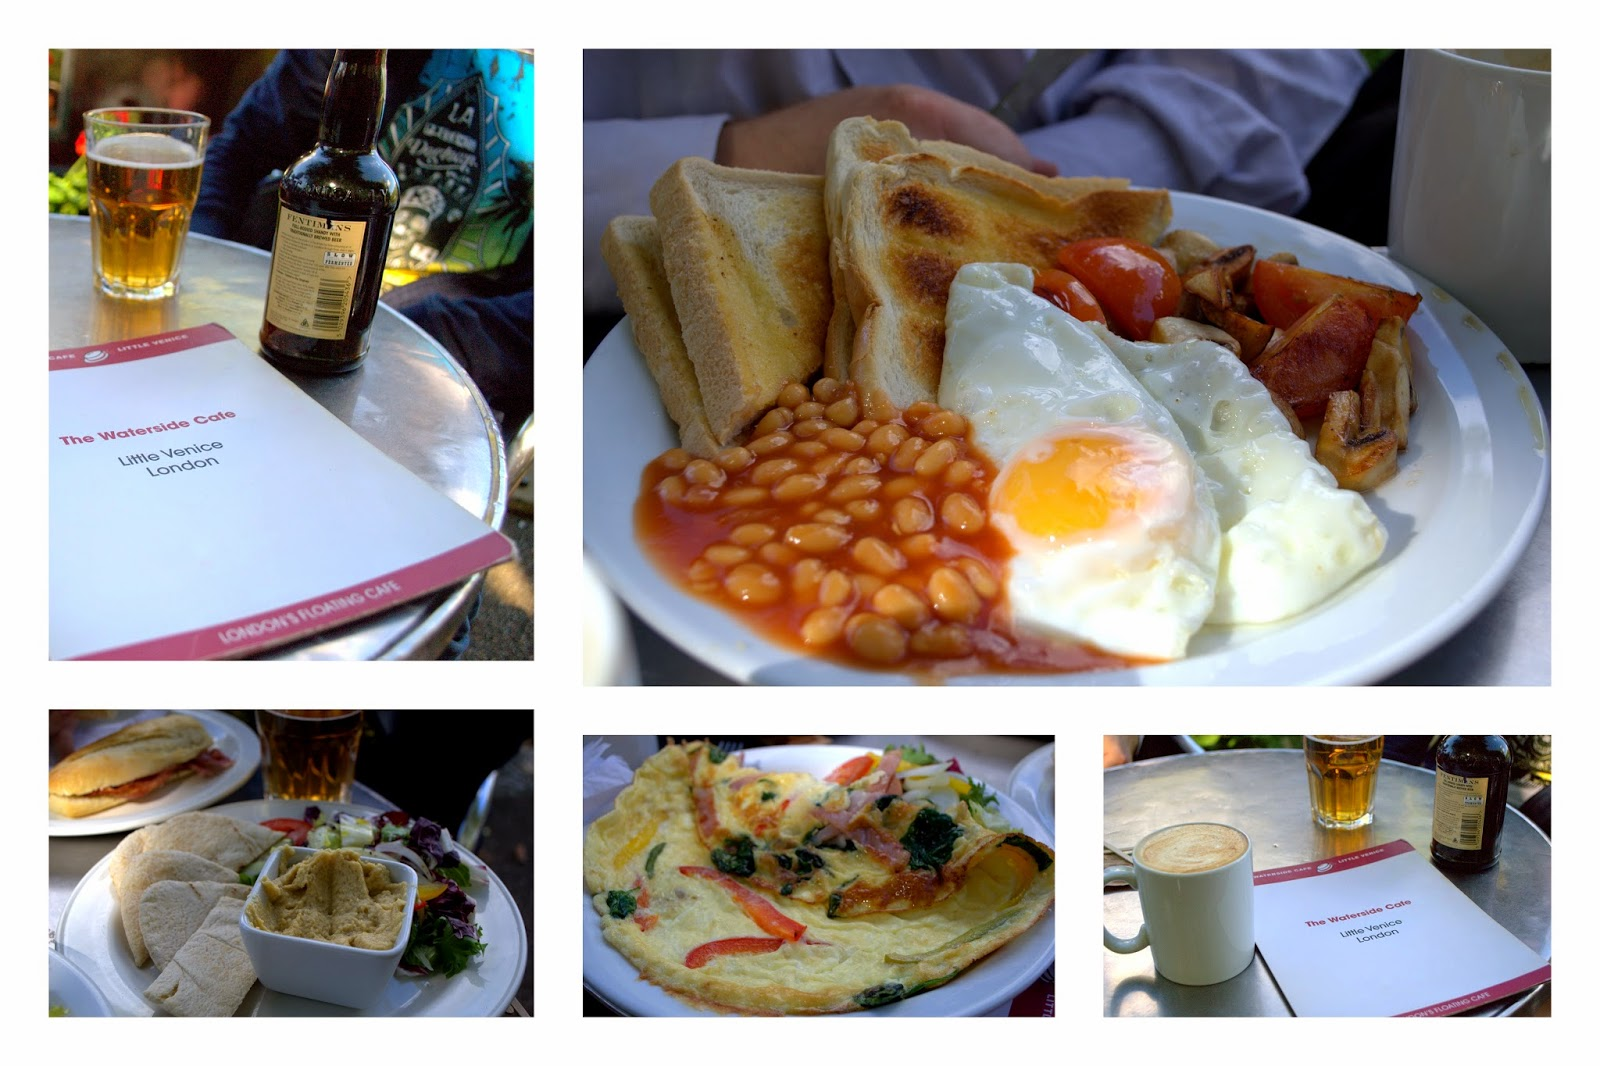 Food at Waterside Cafe Little Venice London Warrick Avenue Paddington